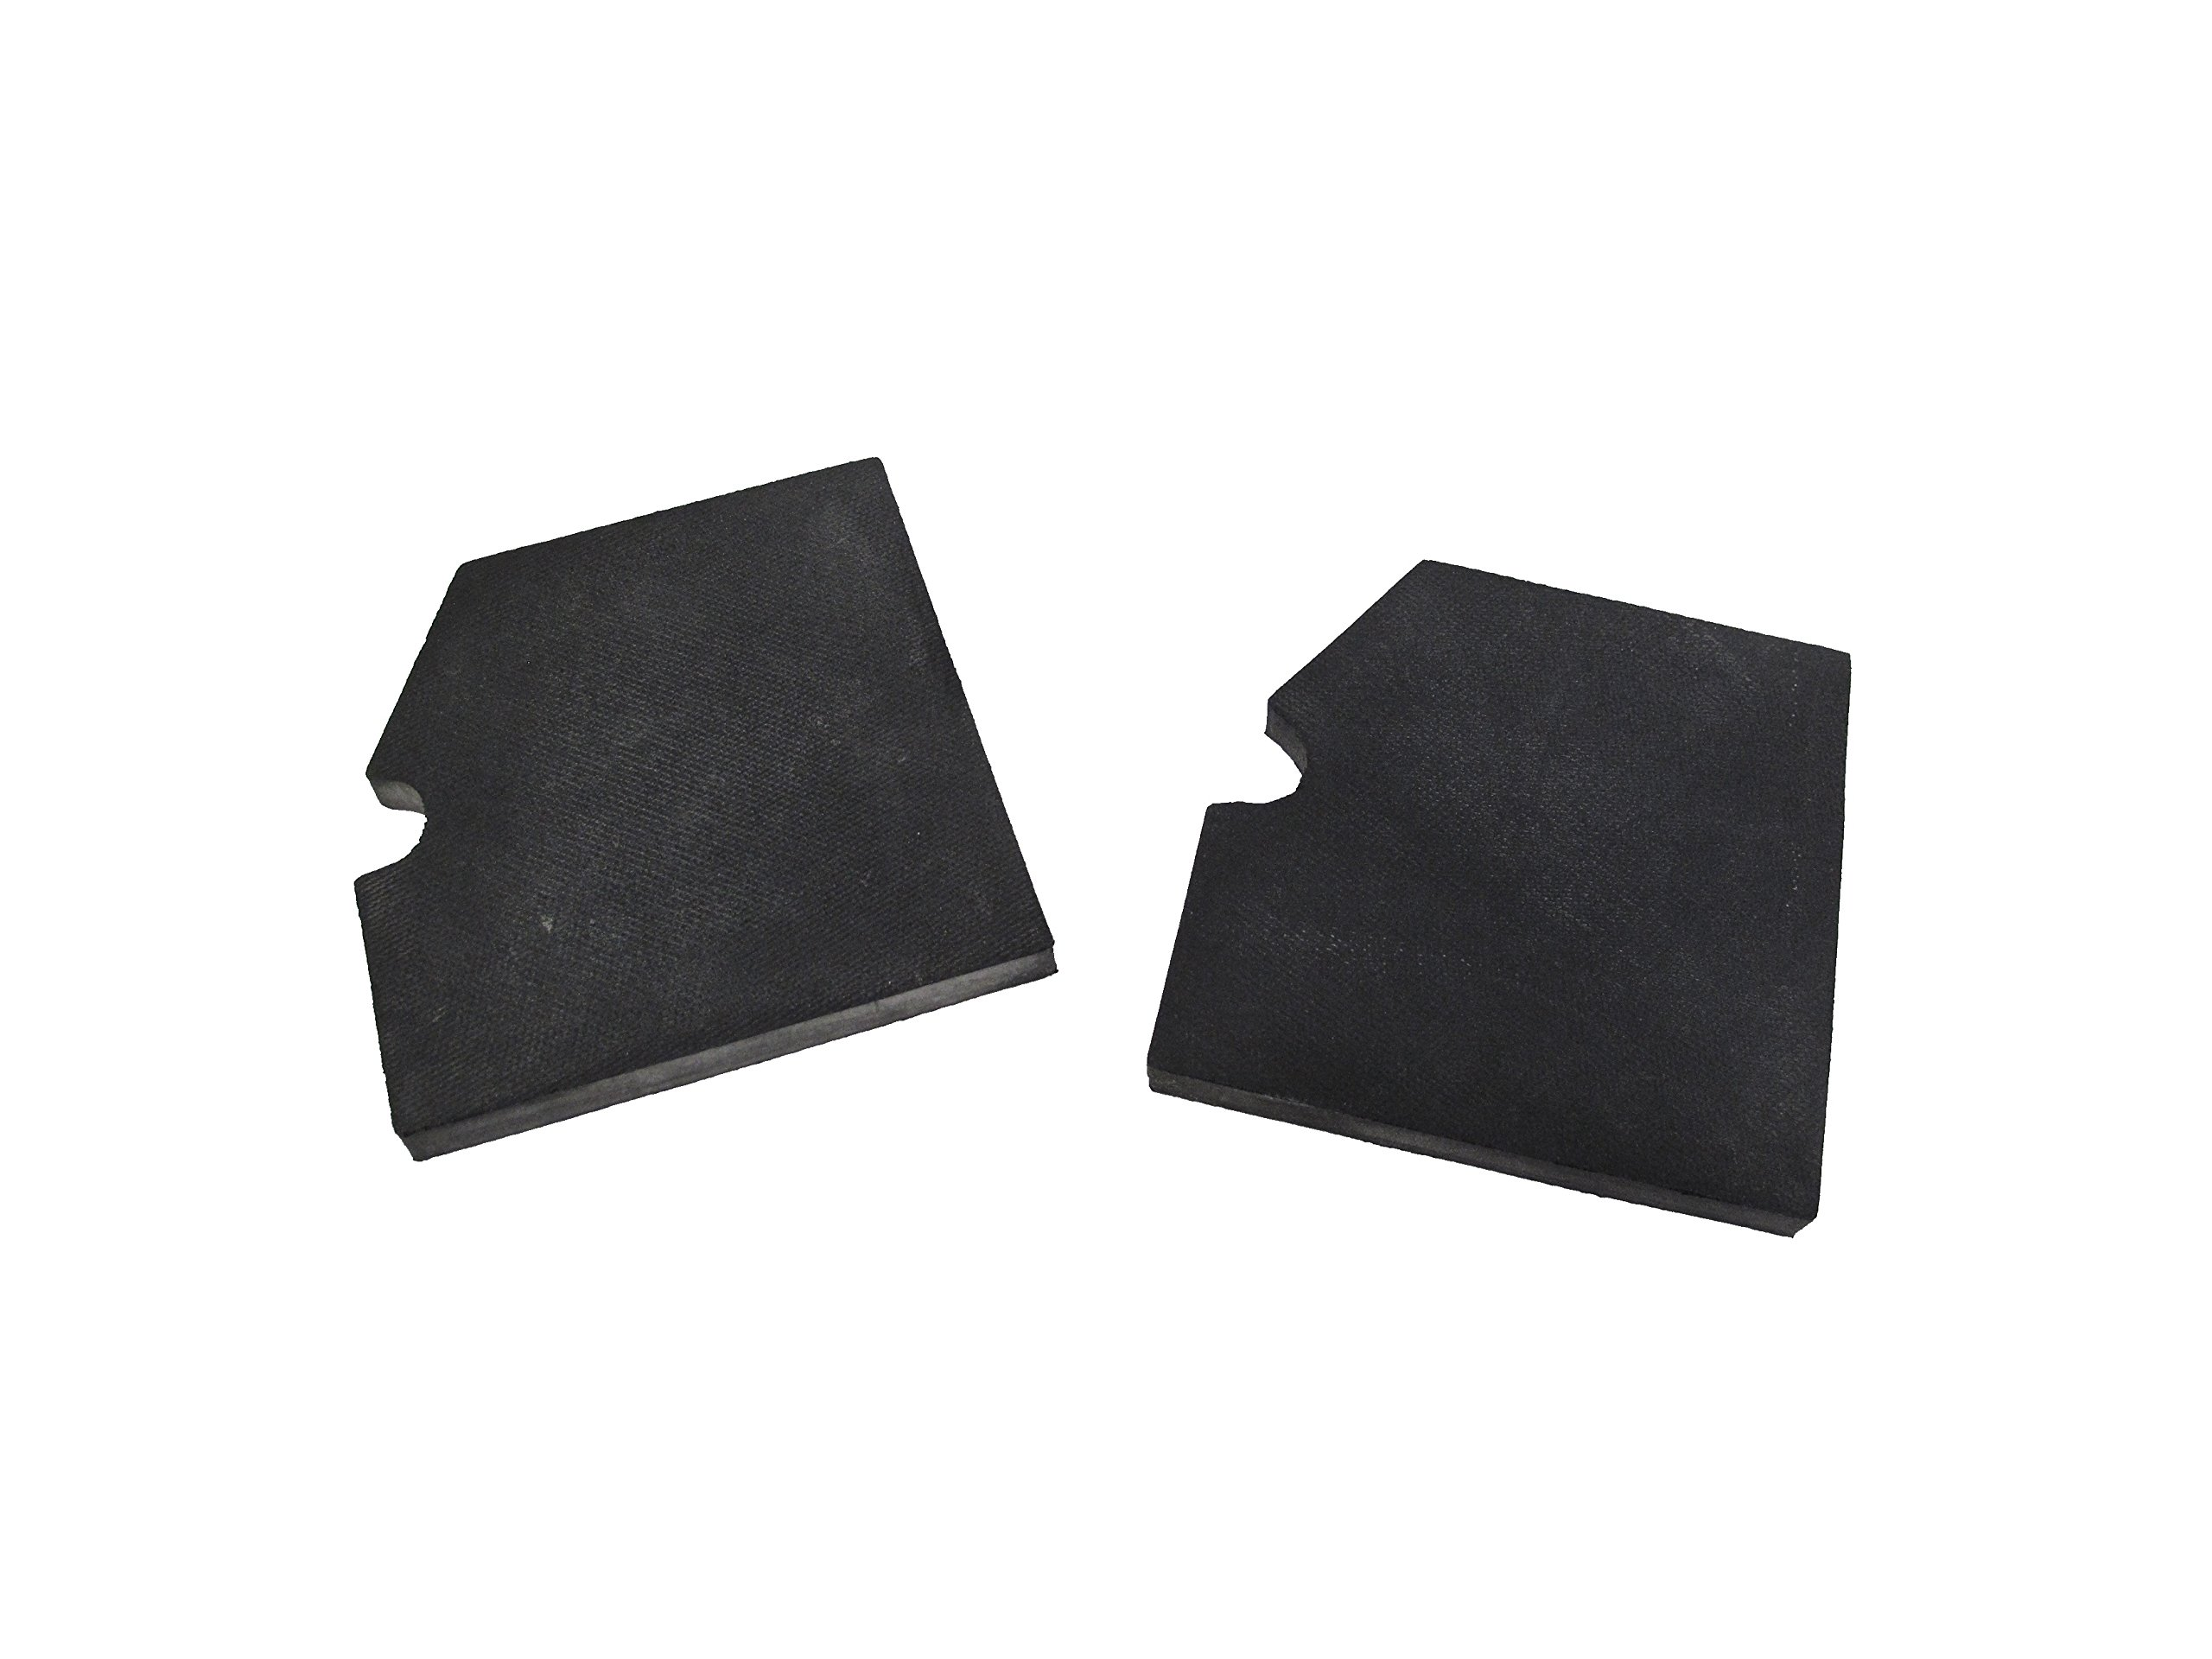 Kraft Tool ST056 Number-1A Replacement Pad Set for Medium Ceramic Tile Cutter